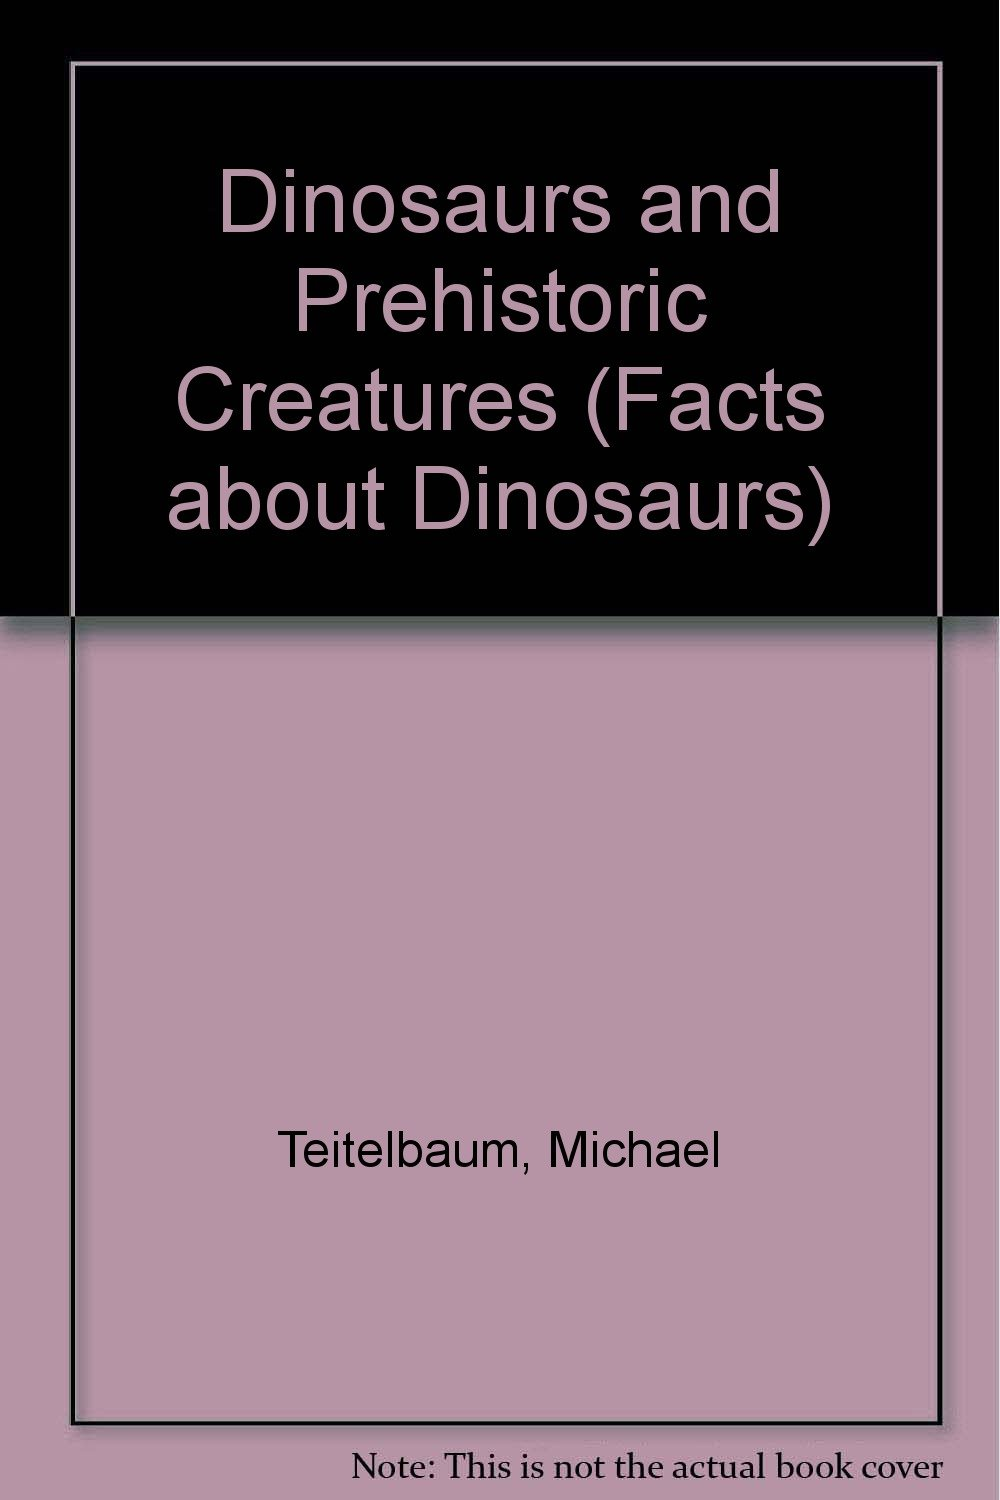 Dinosaurs and Prehistoric Creatures (The Facts About Dinosaurs)